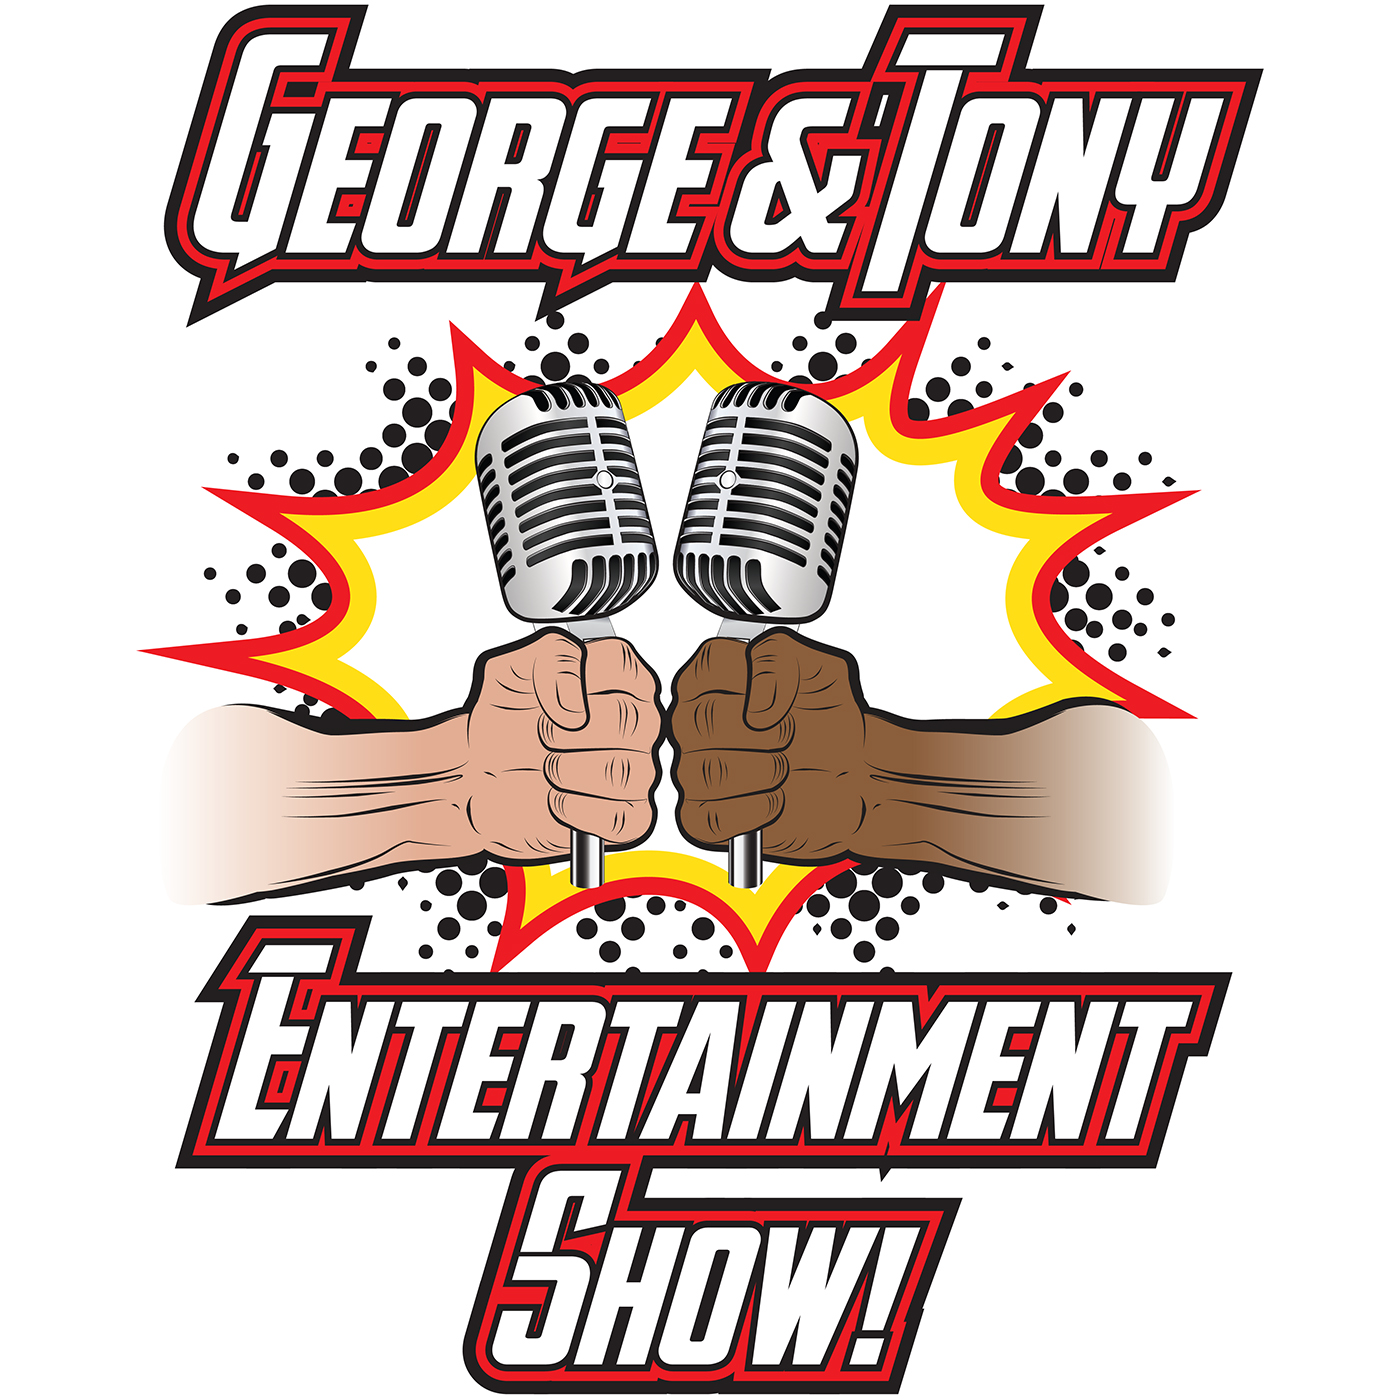 George and Tony Entertainment Show #140